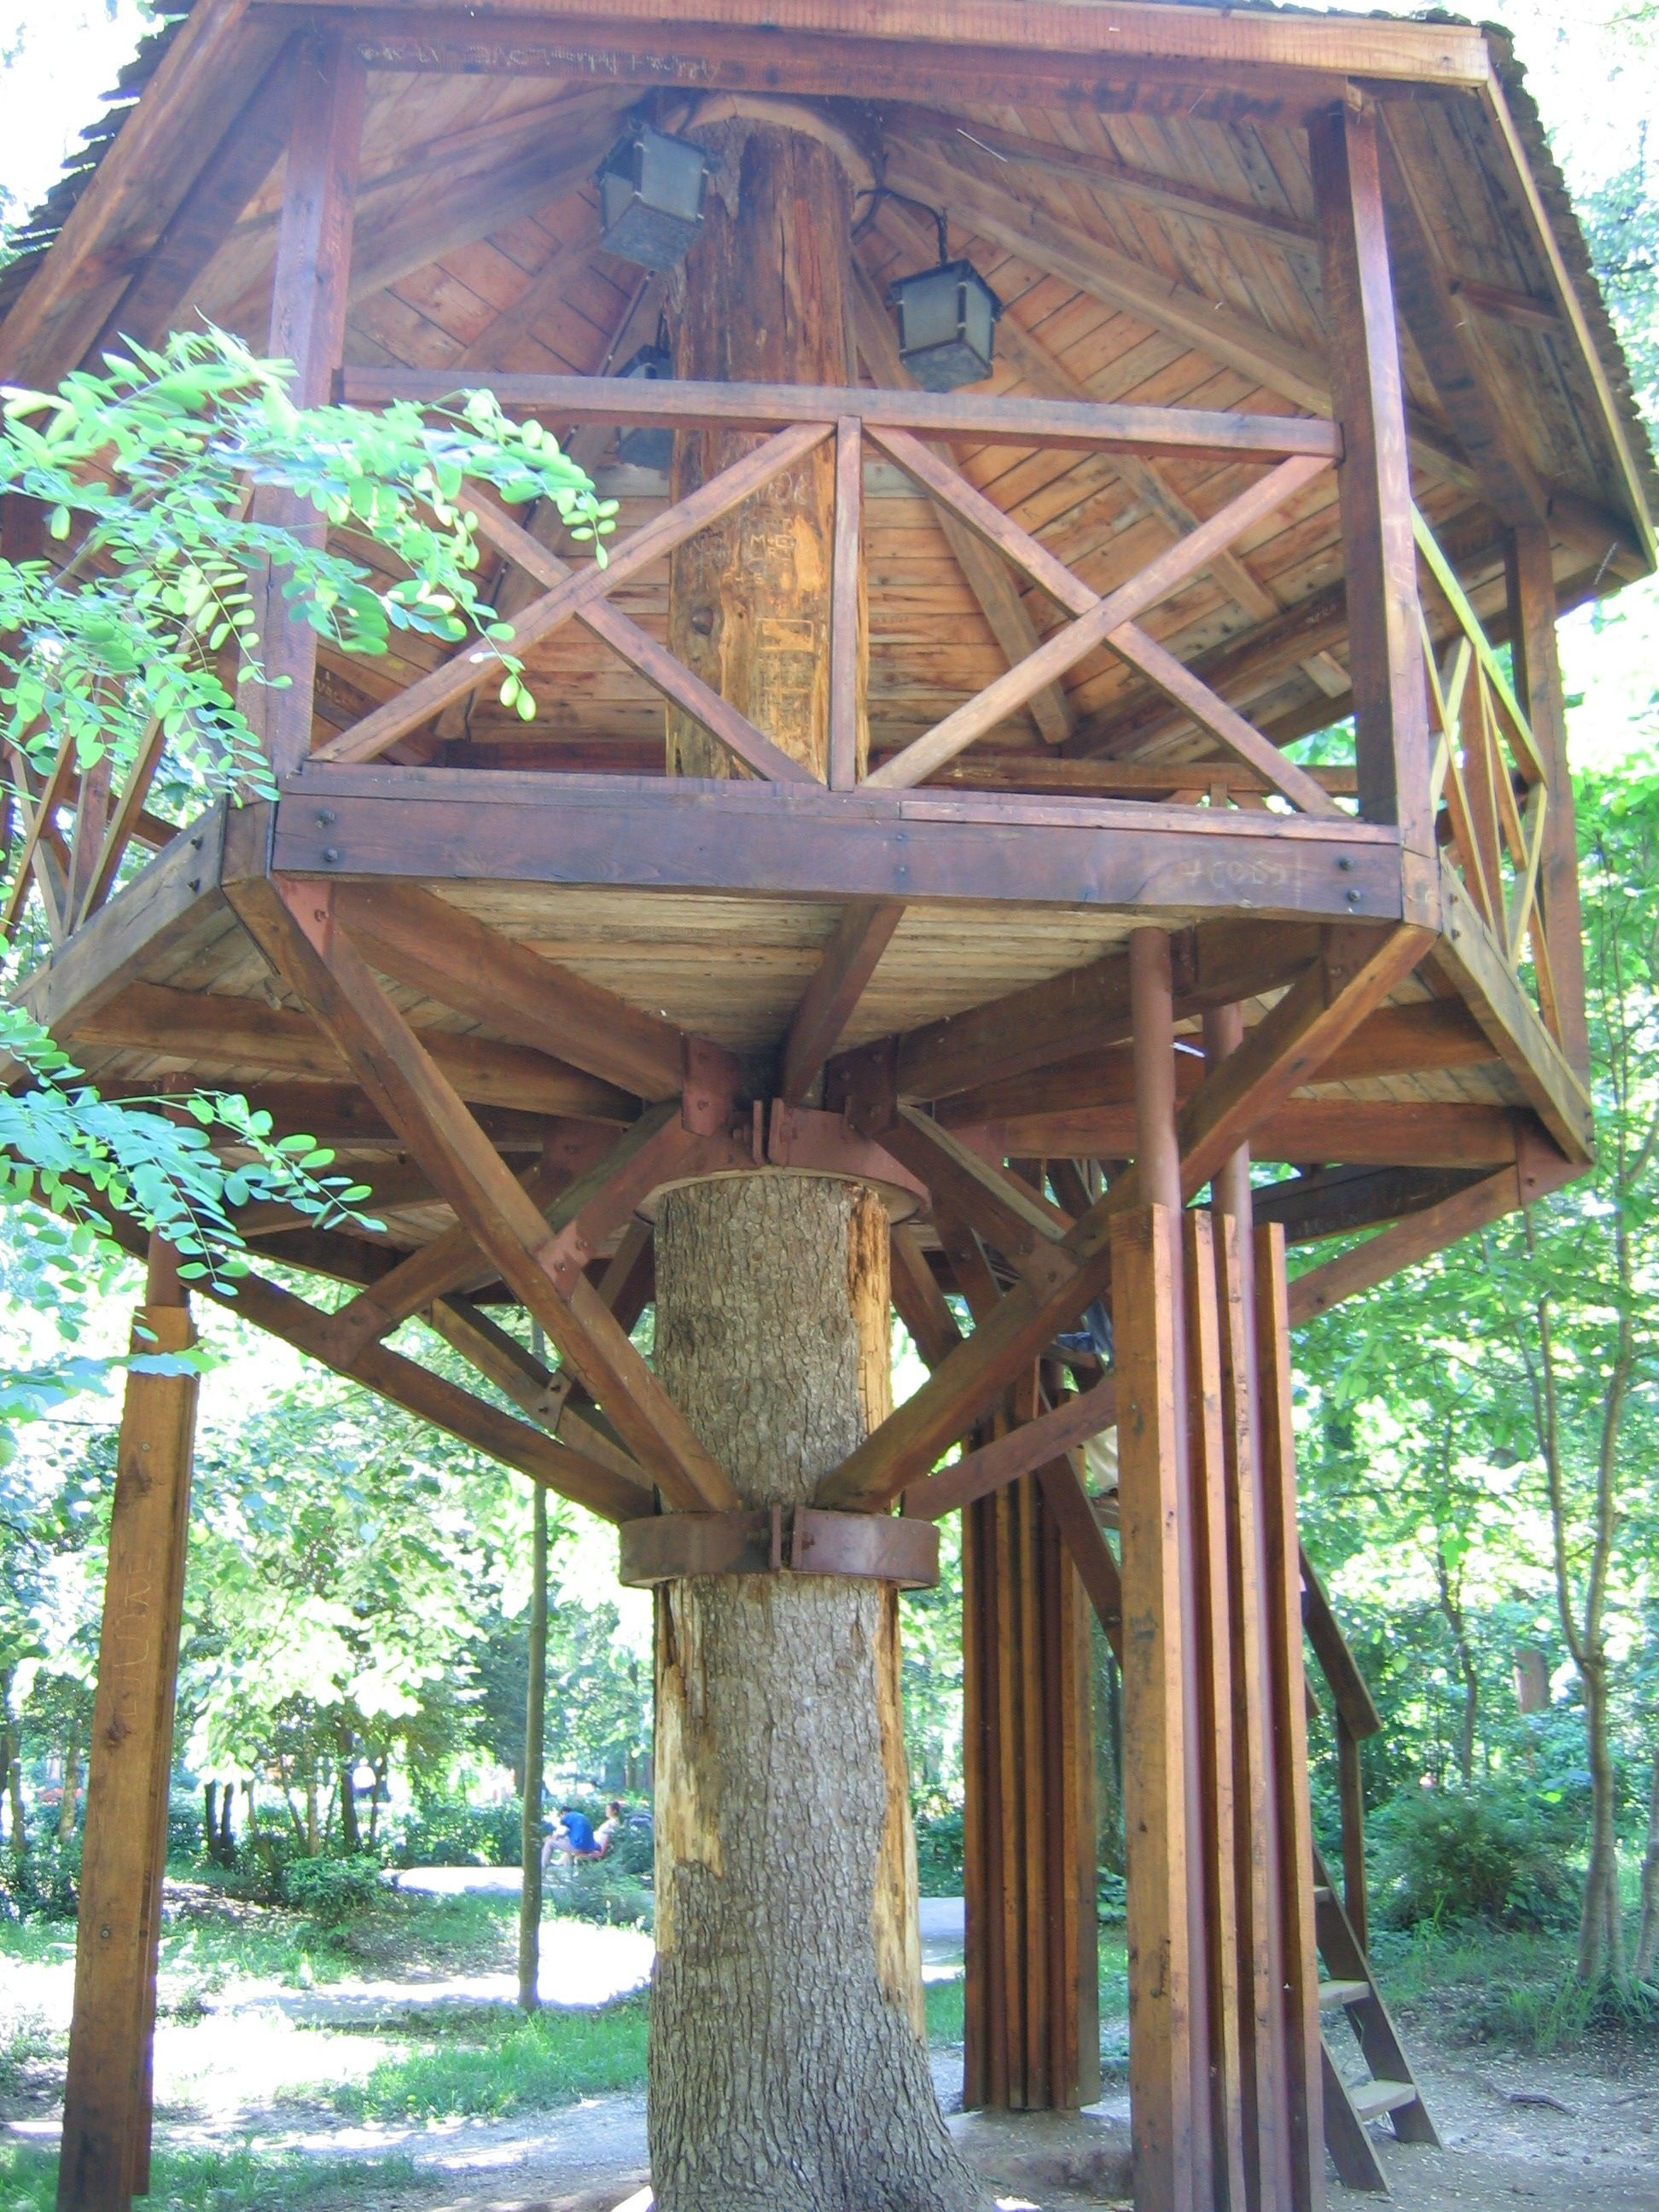 Types of DIY treehouses to build